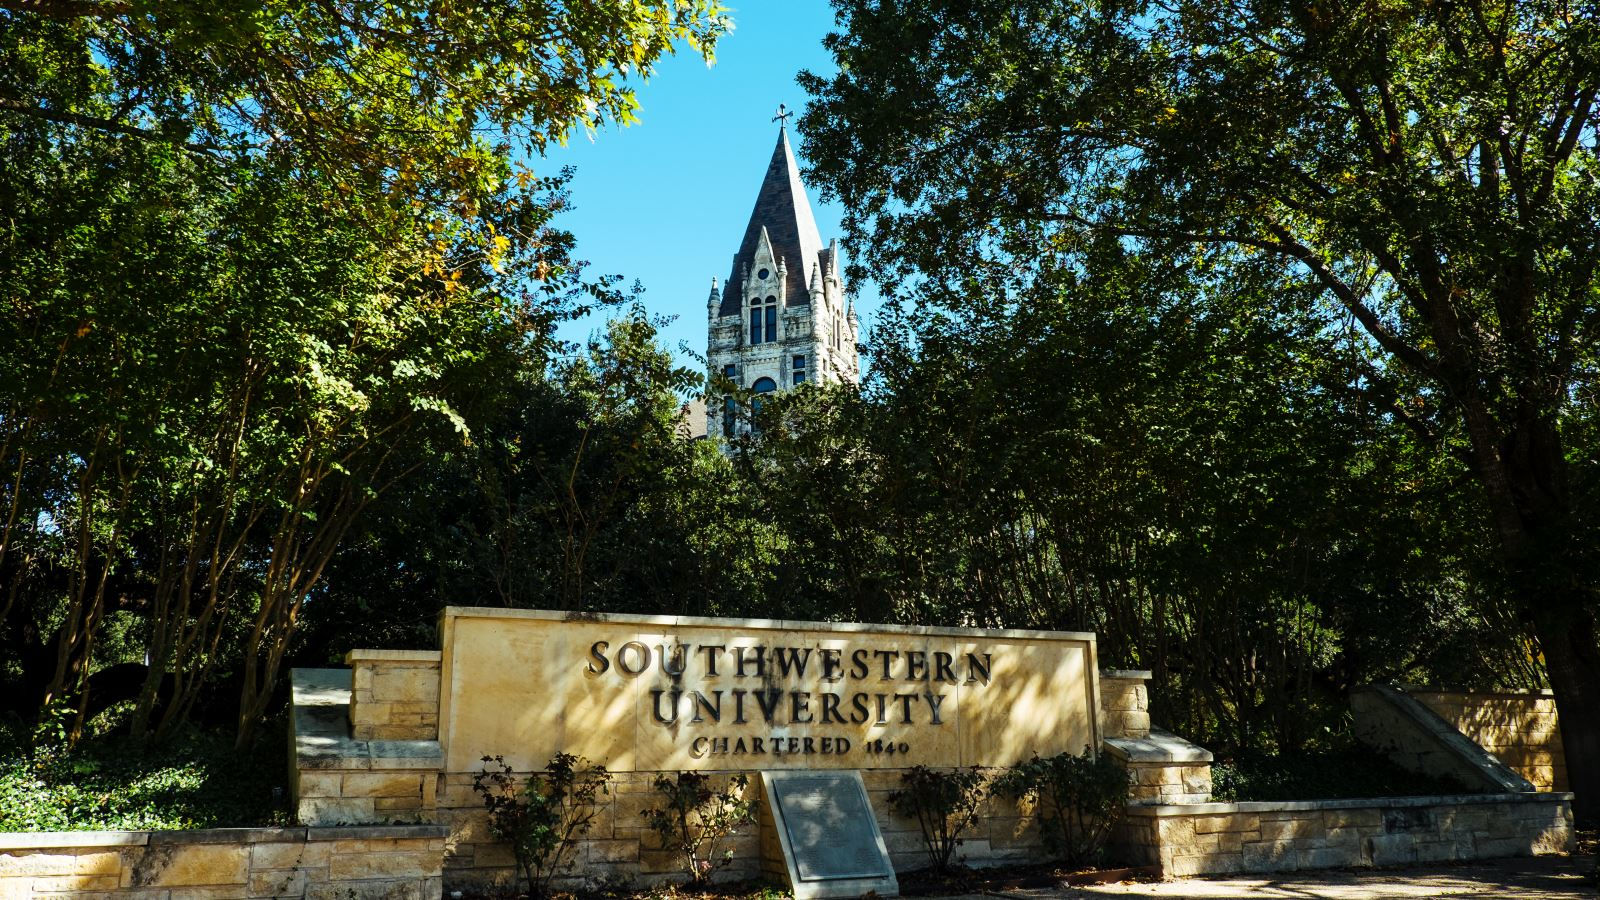 Southwestern UniversityHotels - Sheraton Austin Georgetown Hotel & Conference Center